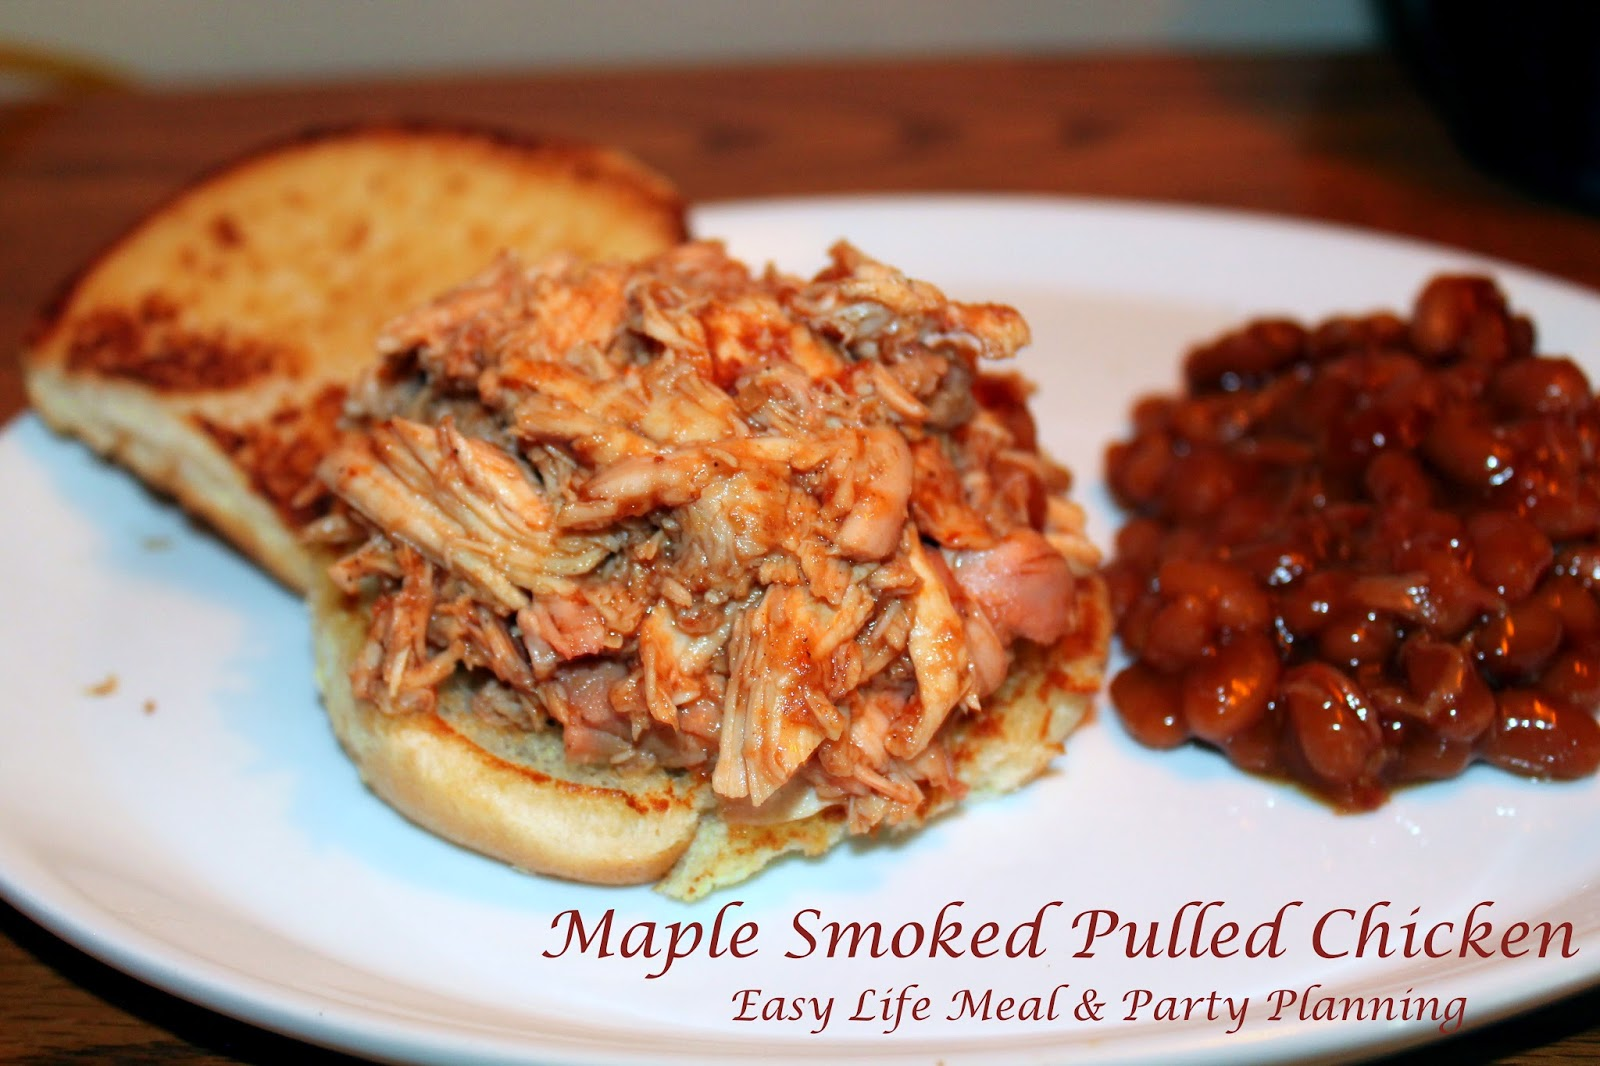 Maple Smoked Pulled Chicken - Easy Life Meal & Party Planning - Maple, hone & barbecue sauce flavors melded together into the juiciest chicken you will ever taste!